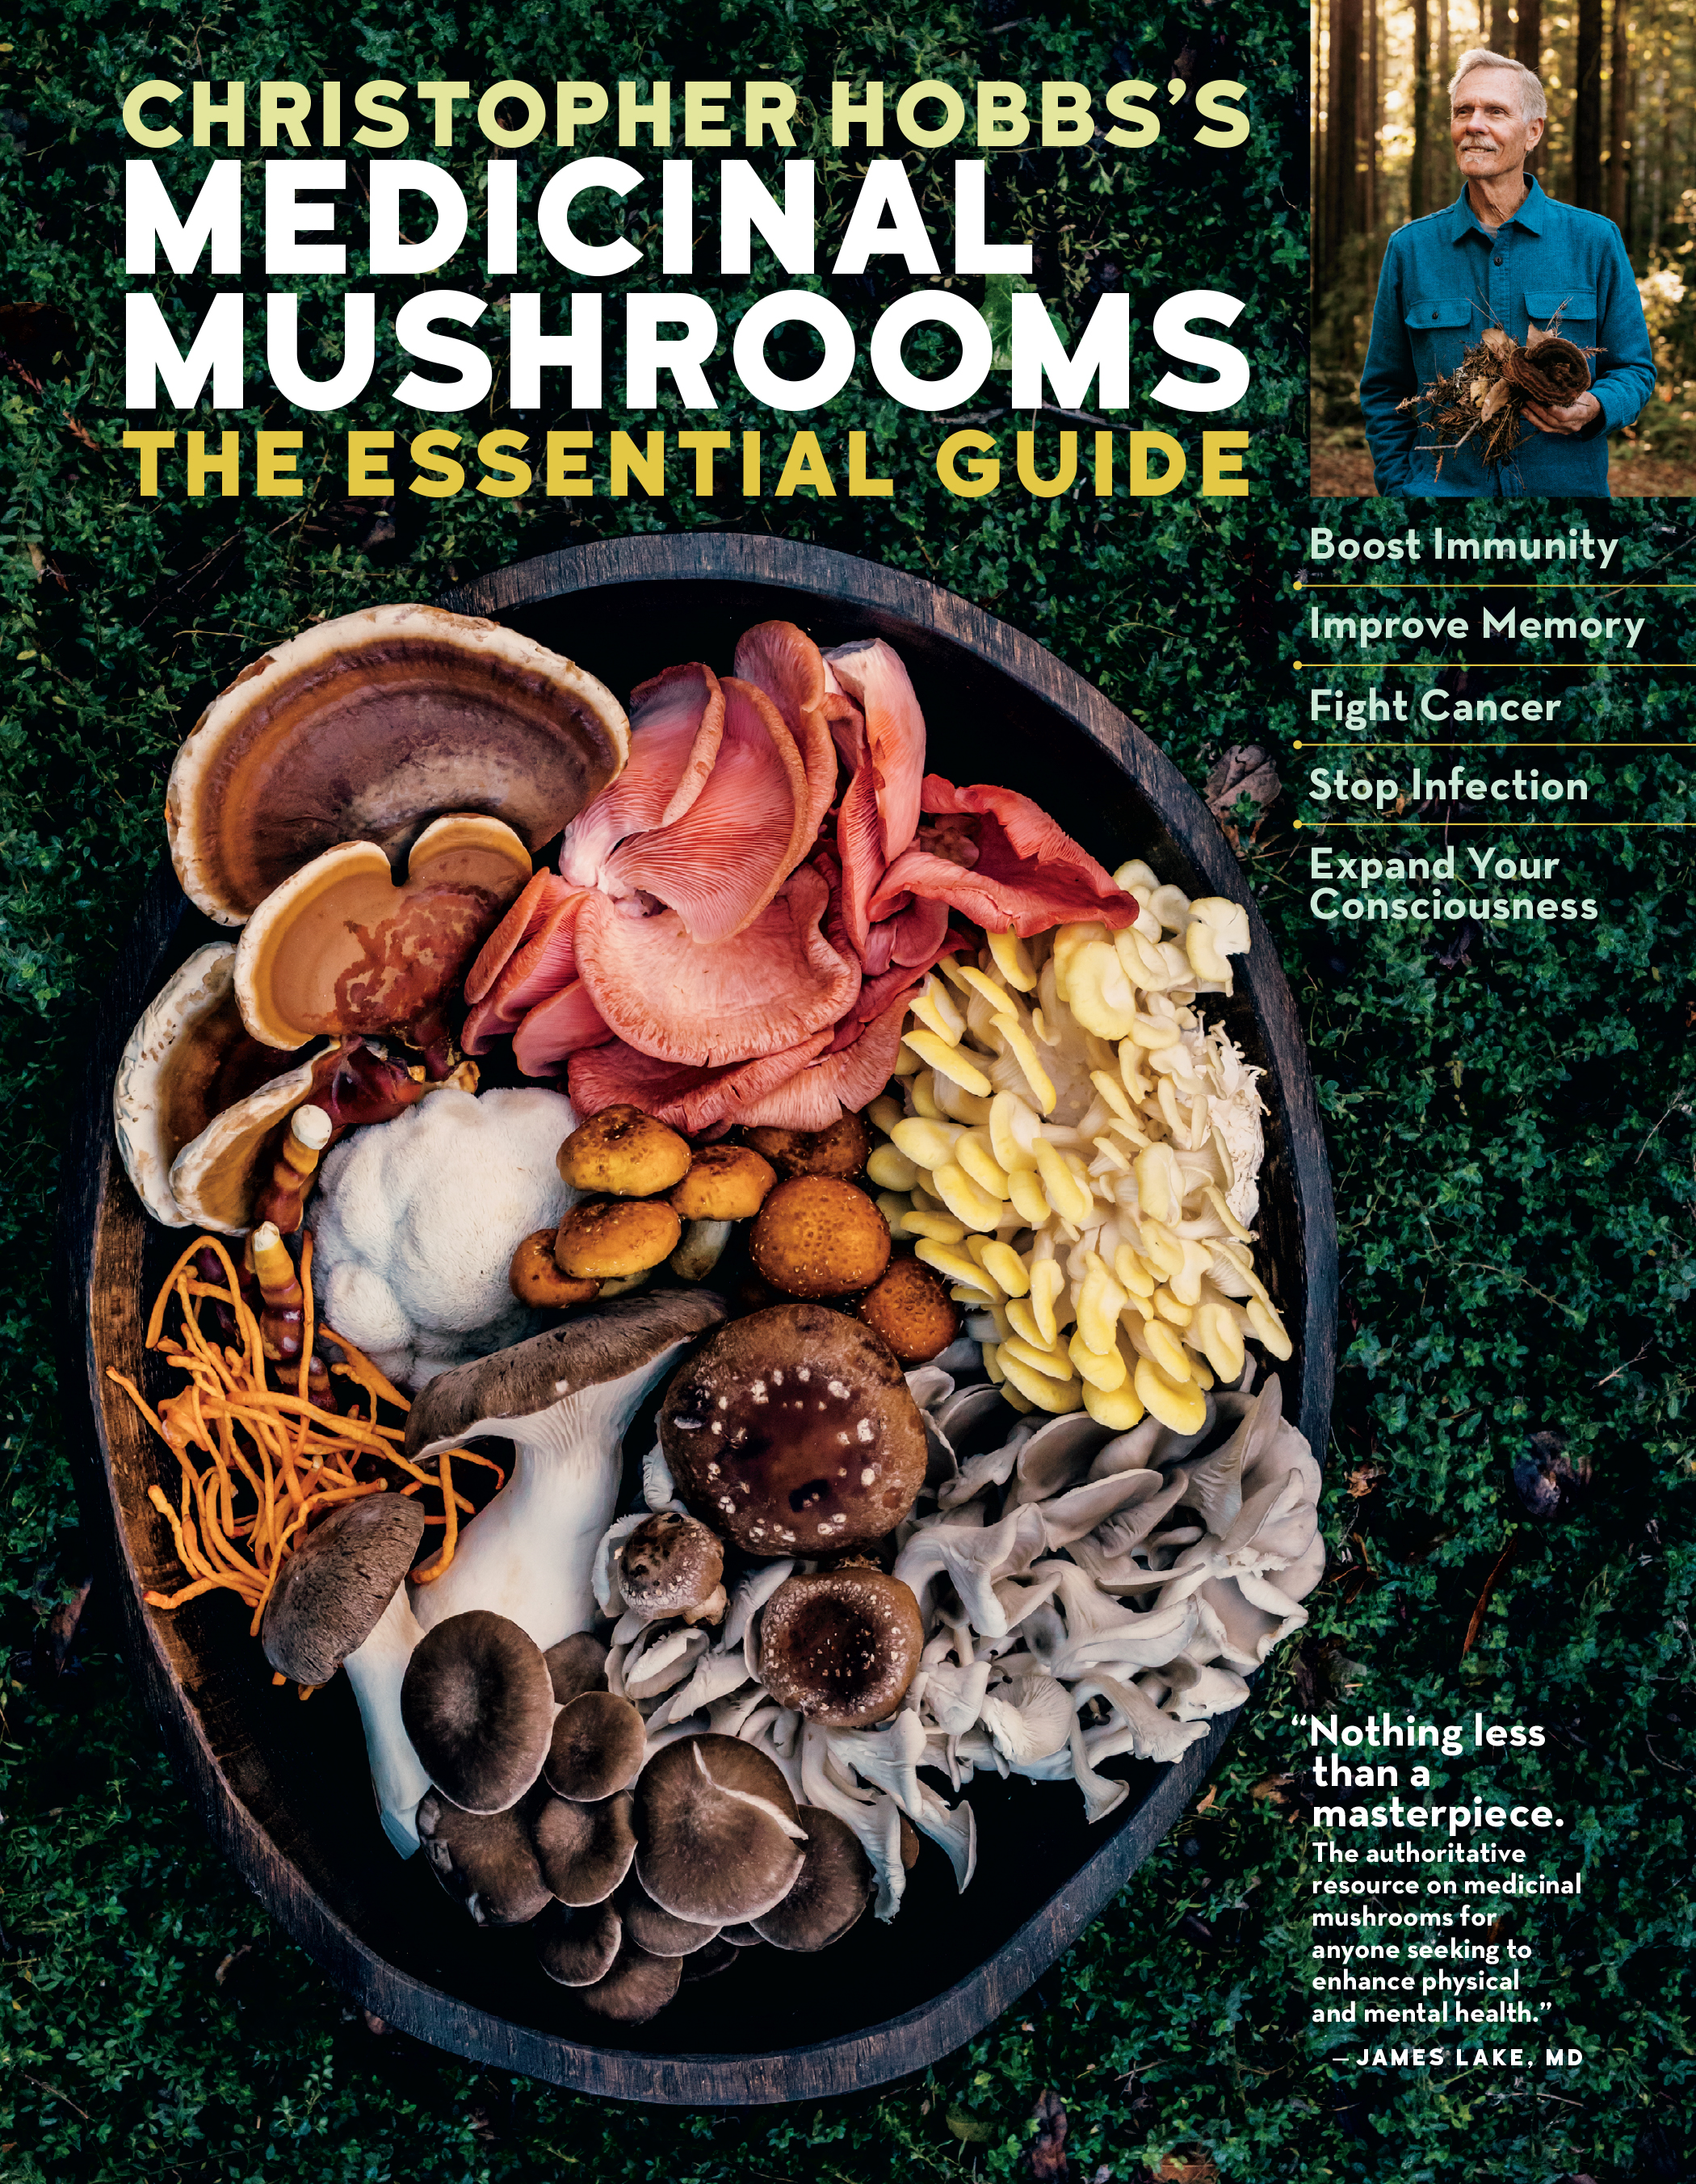 Christopher Hobbs's Medicinal Mushrooms: The Essential Guide Boost Immunity, Improve Memory, Fight Cancer, and Expand Your Consciousness - Christopher Hobbs